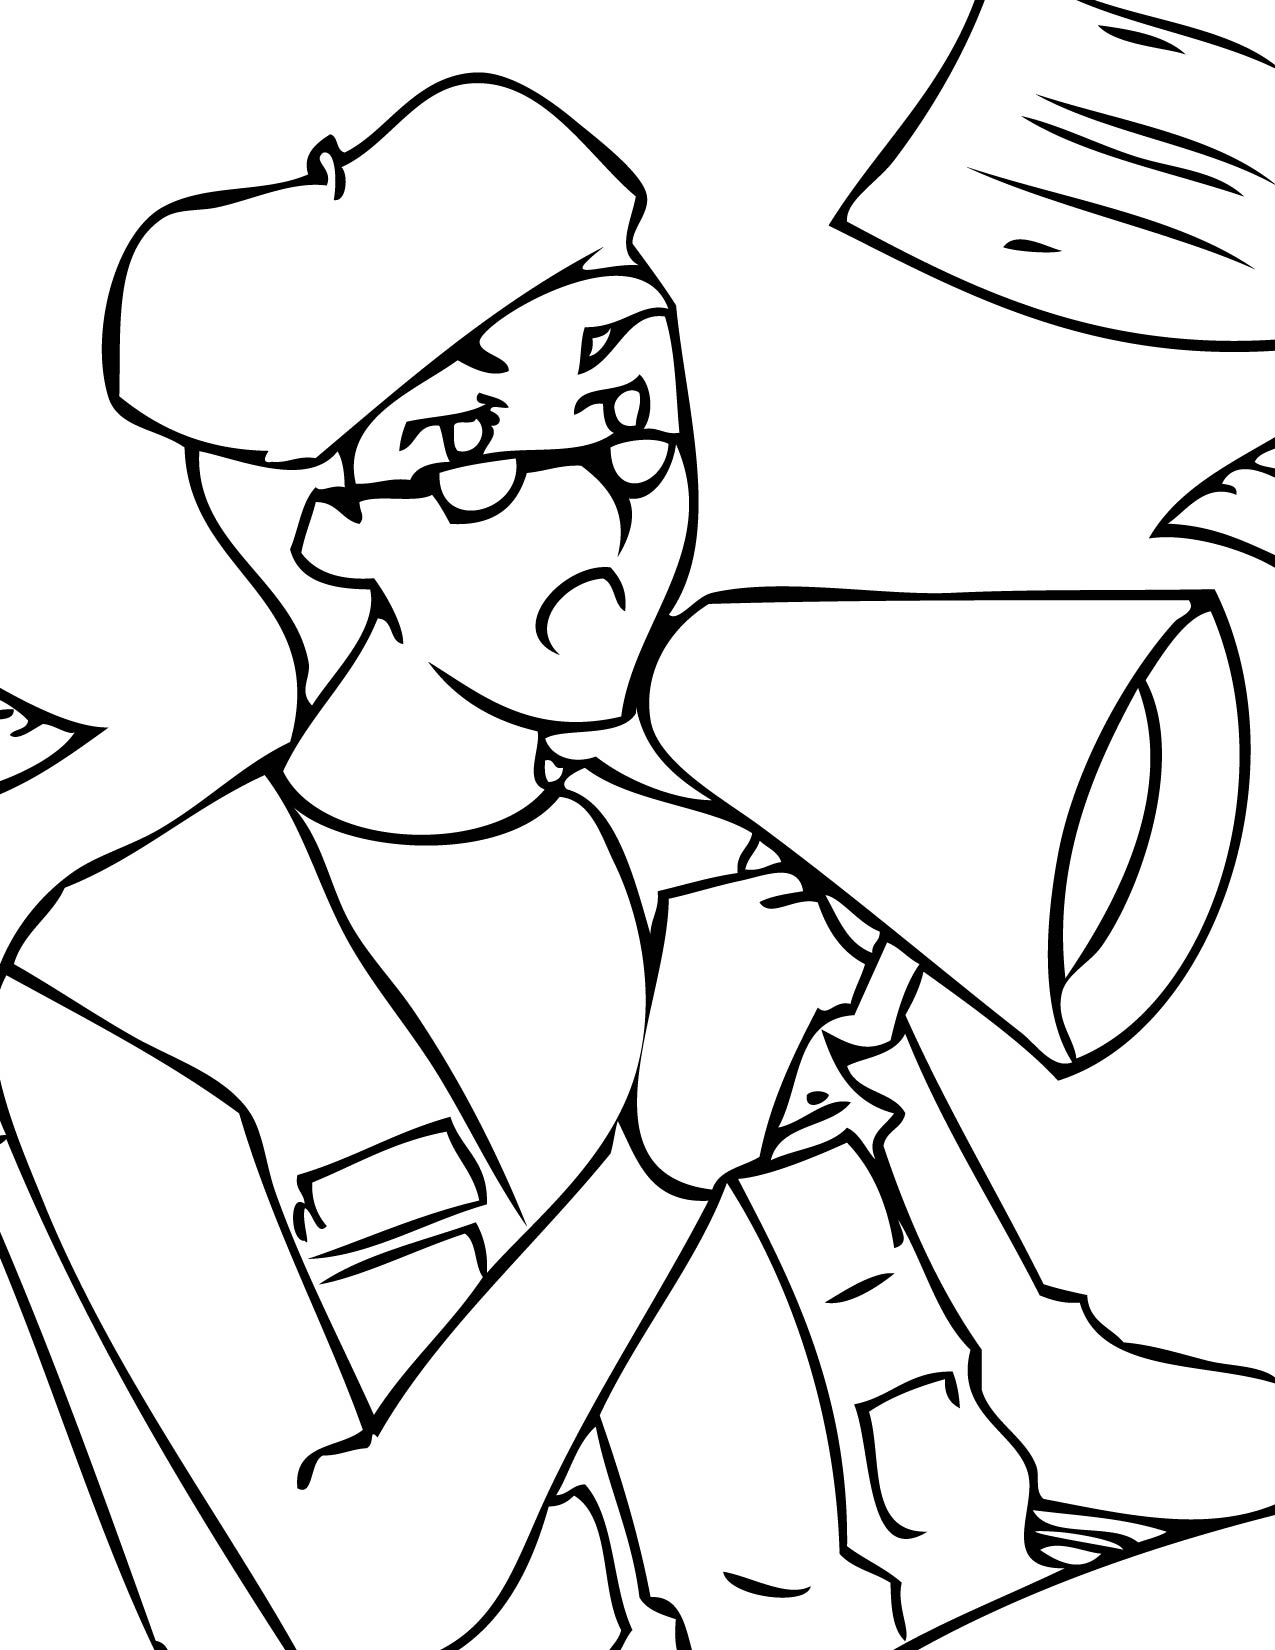 Good Teacher Coloring Pages Coloring Pages